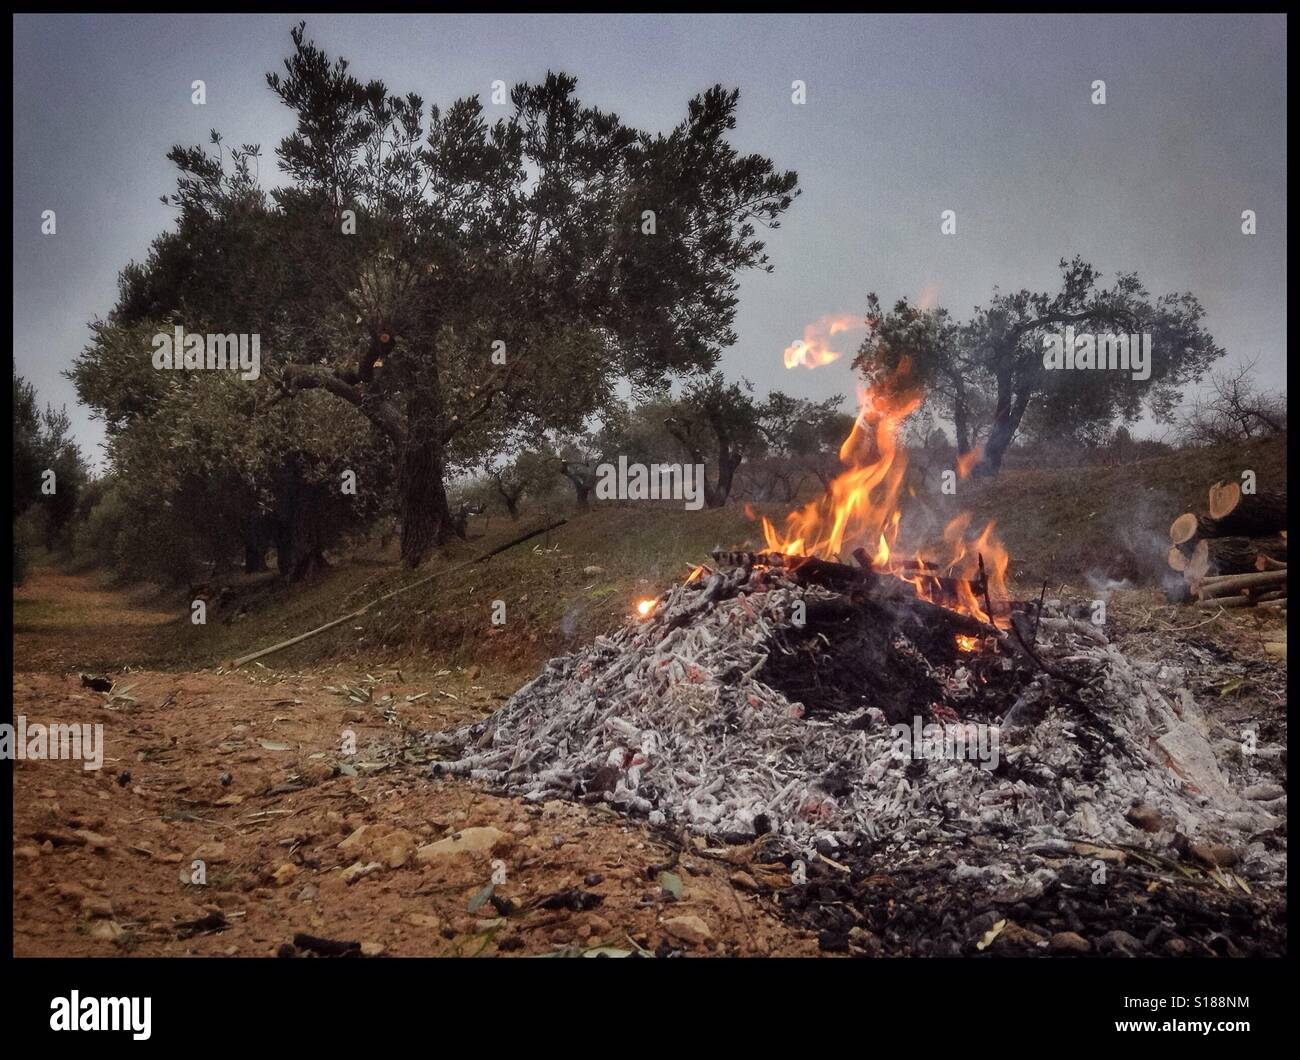 Burning olive branches during the seasonal pruning of olive trees, Catalonia, Spain. Stock Photo